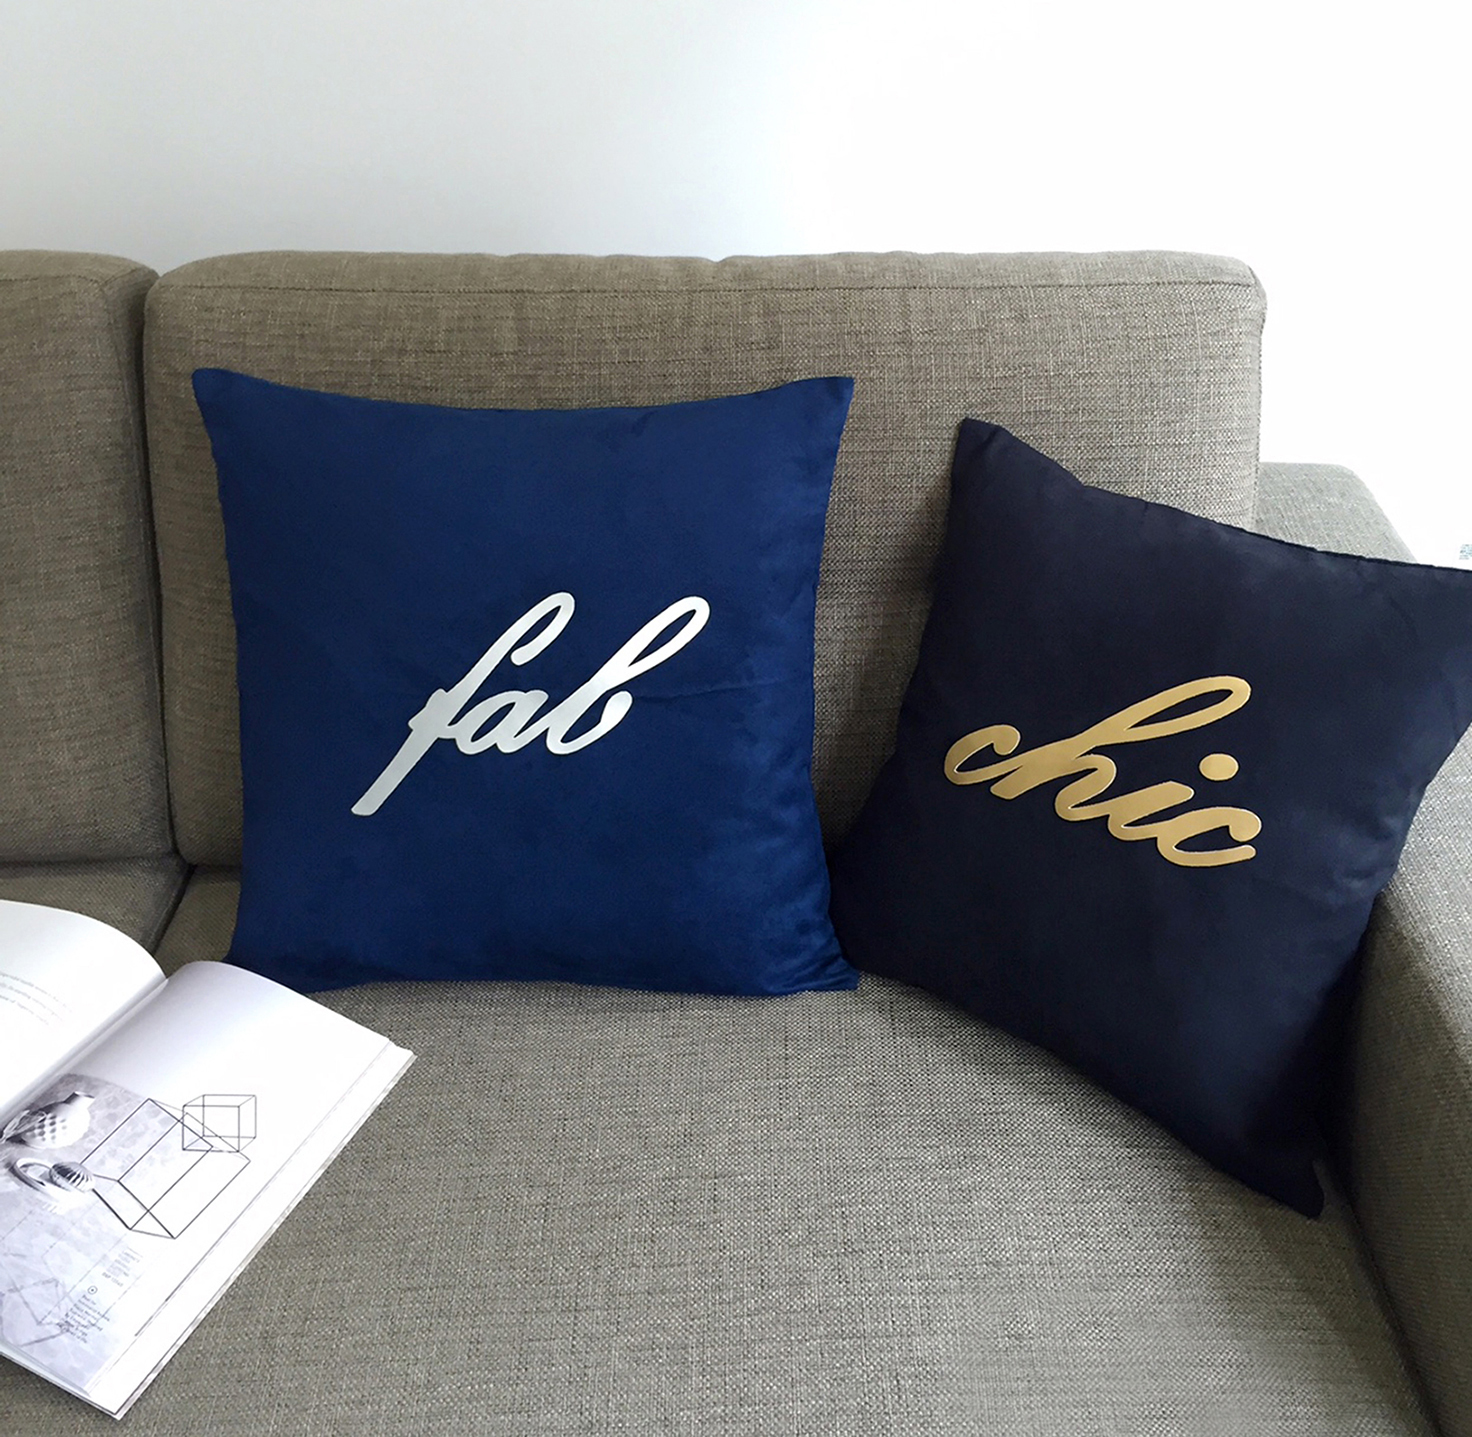 Custom Your Color. Handcut Metallic Fab Gold Chic Navy Black Pillow Cover Cushion Cover. Modern Statement Cushion Cover